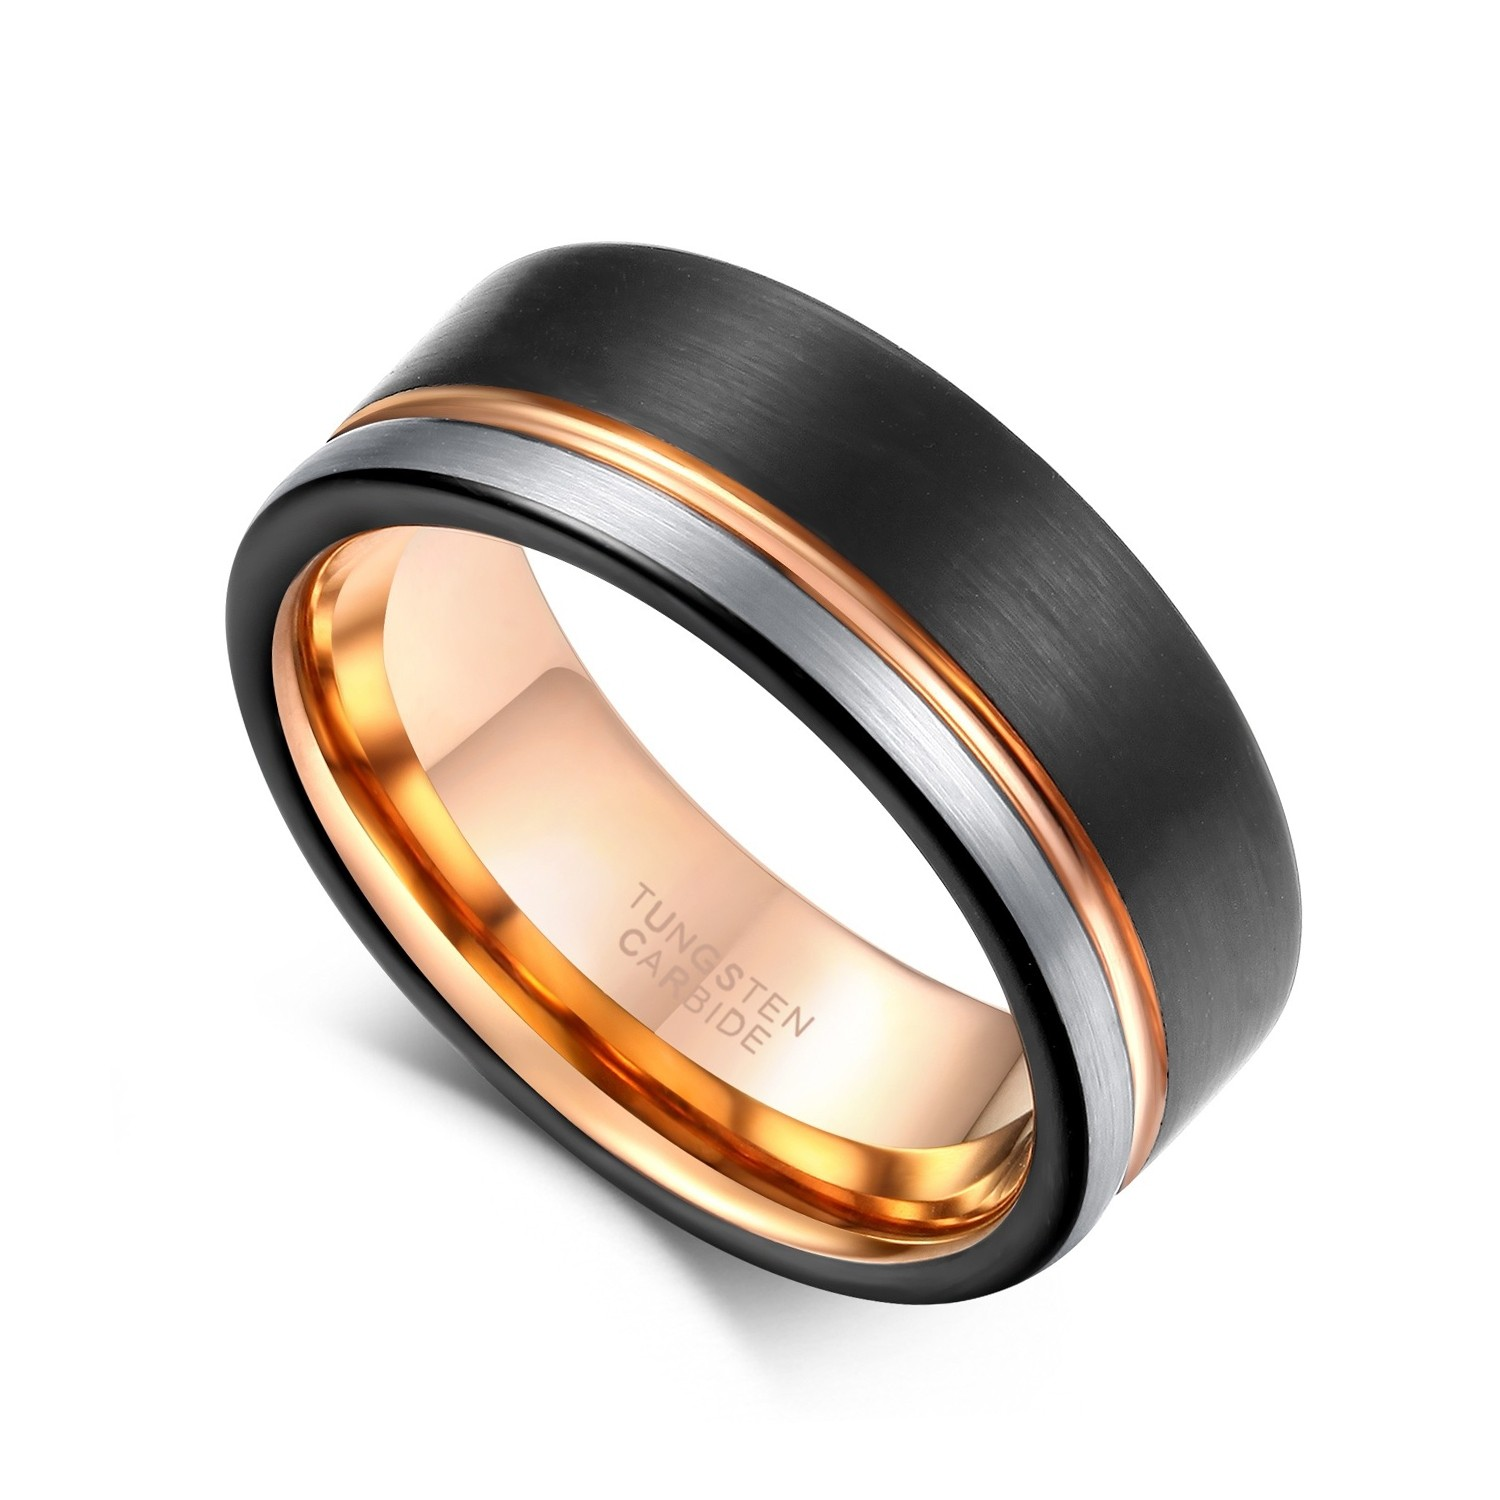 8mm Matte Black Domed Tungsten Carbide Wedding Ring with a Rose Gold Lining